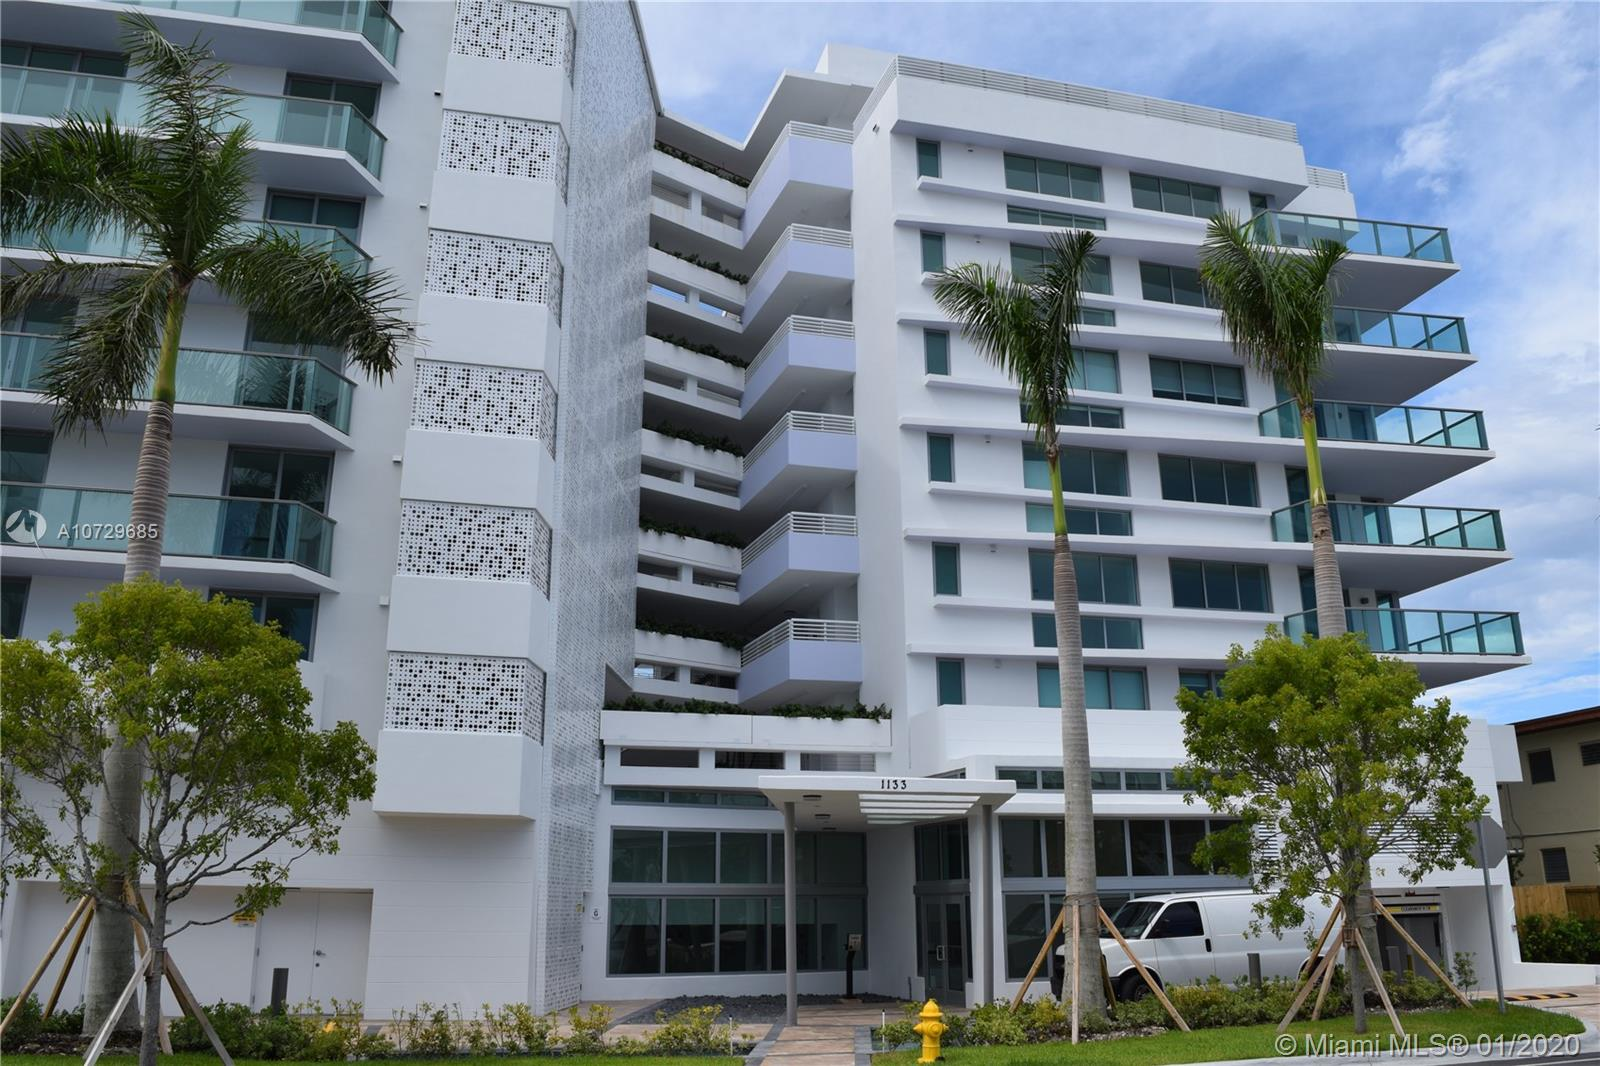 1133  102ND #604 For Sale A10729685, FL